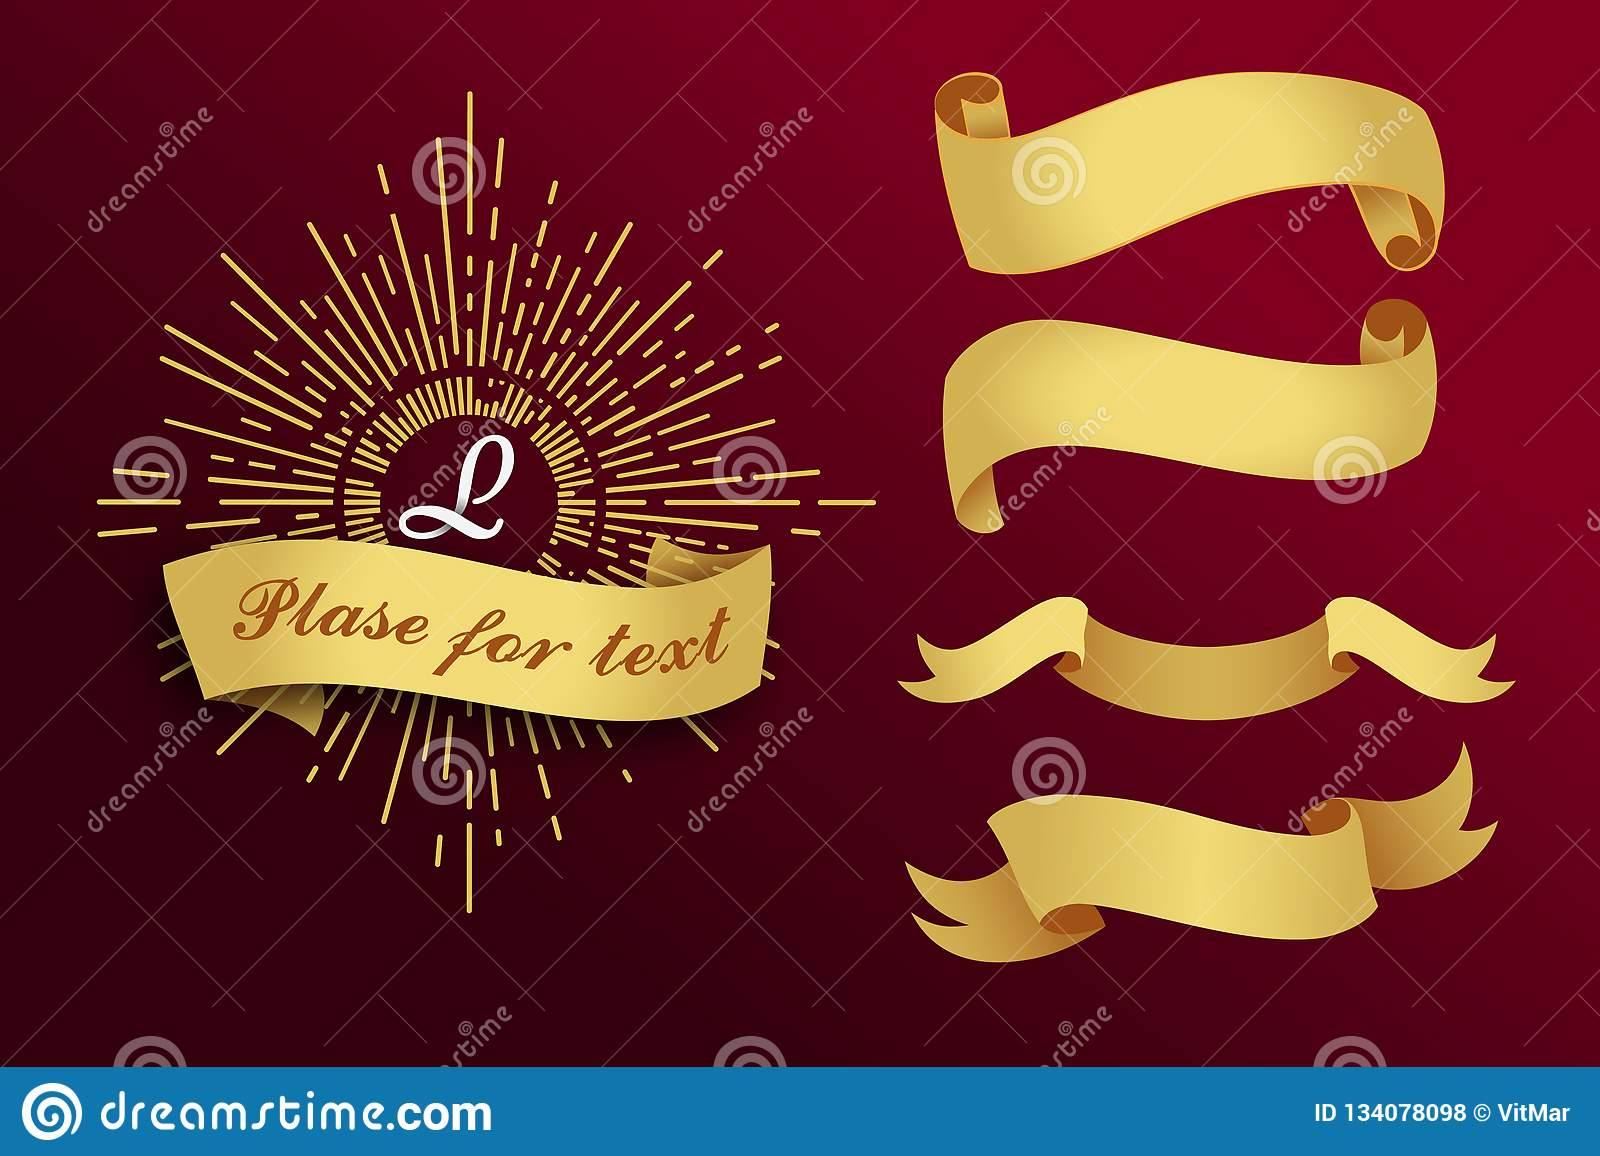 Golden ribbons on a red background. Vector illustration